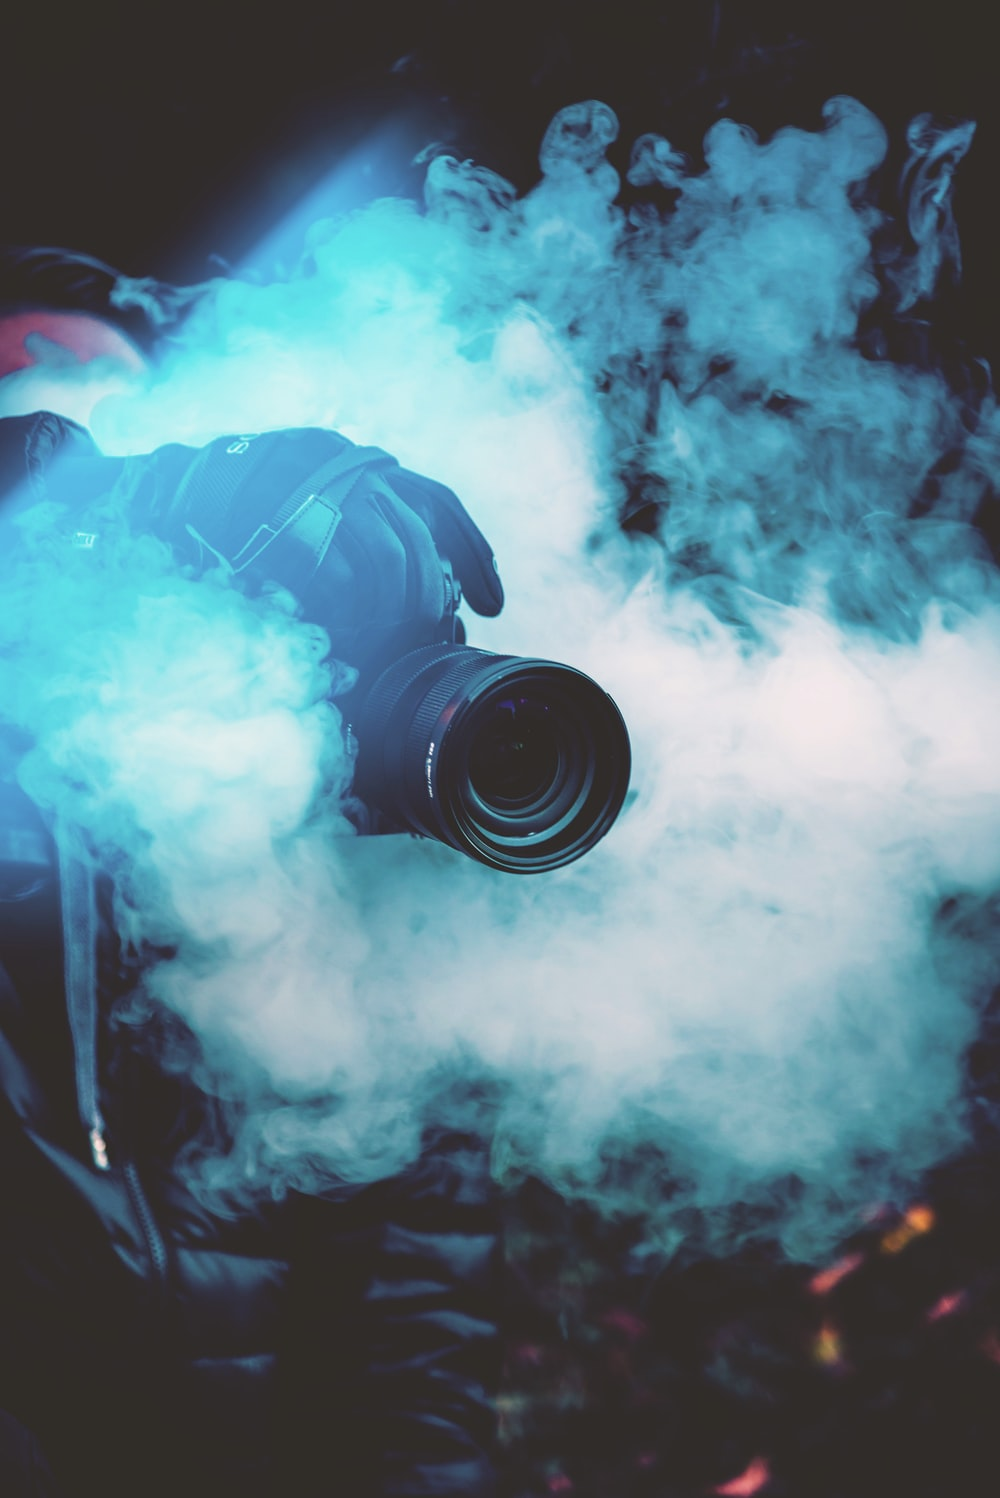 person holding DSLR camera with fogs